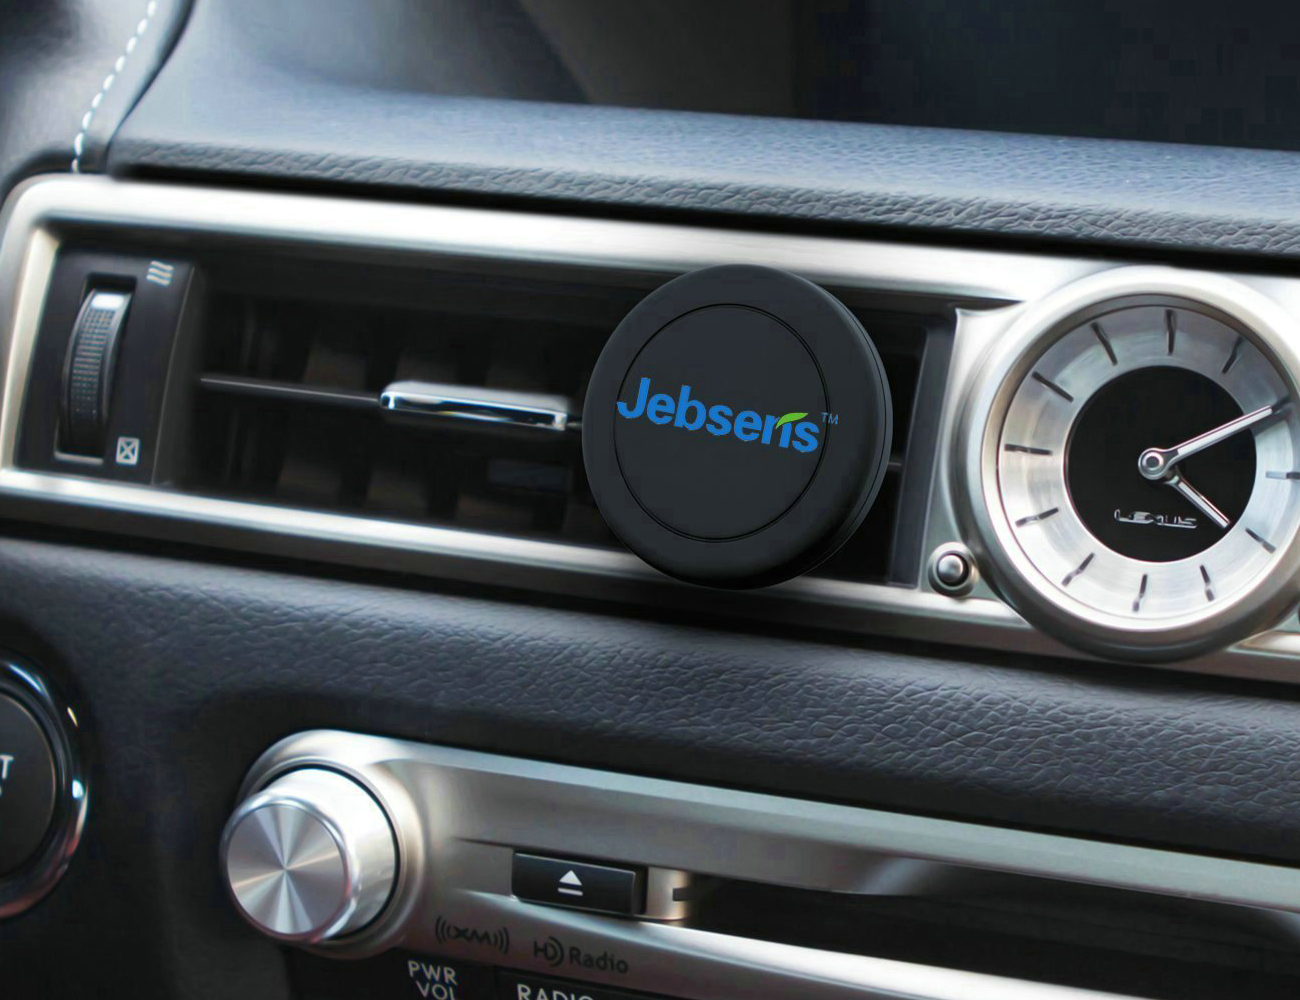 jebsens-magnetic-smartphone-car-mount-02